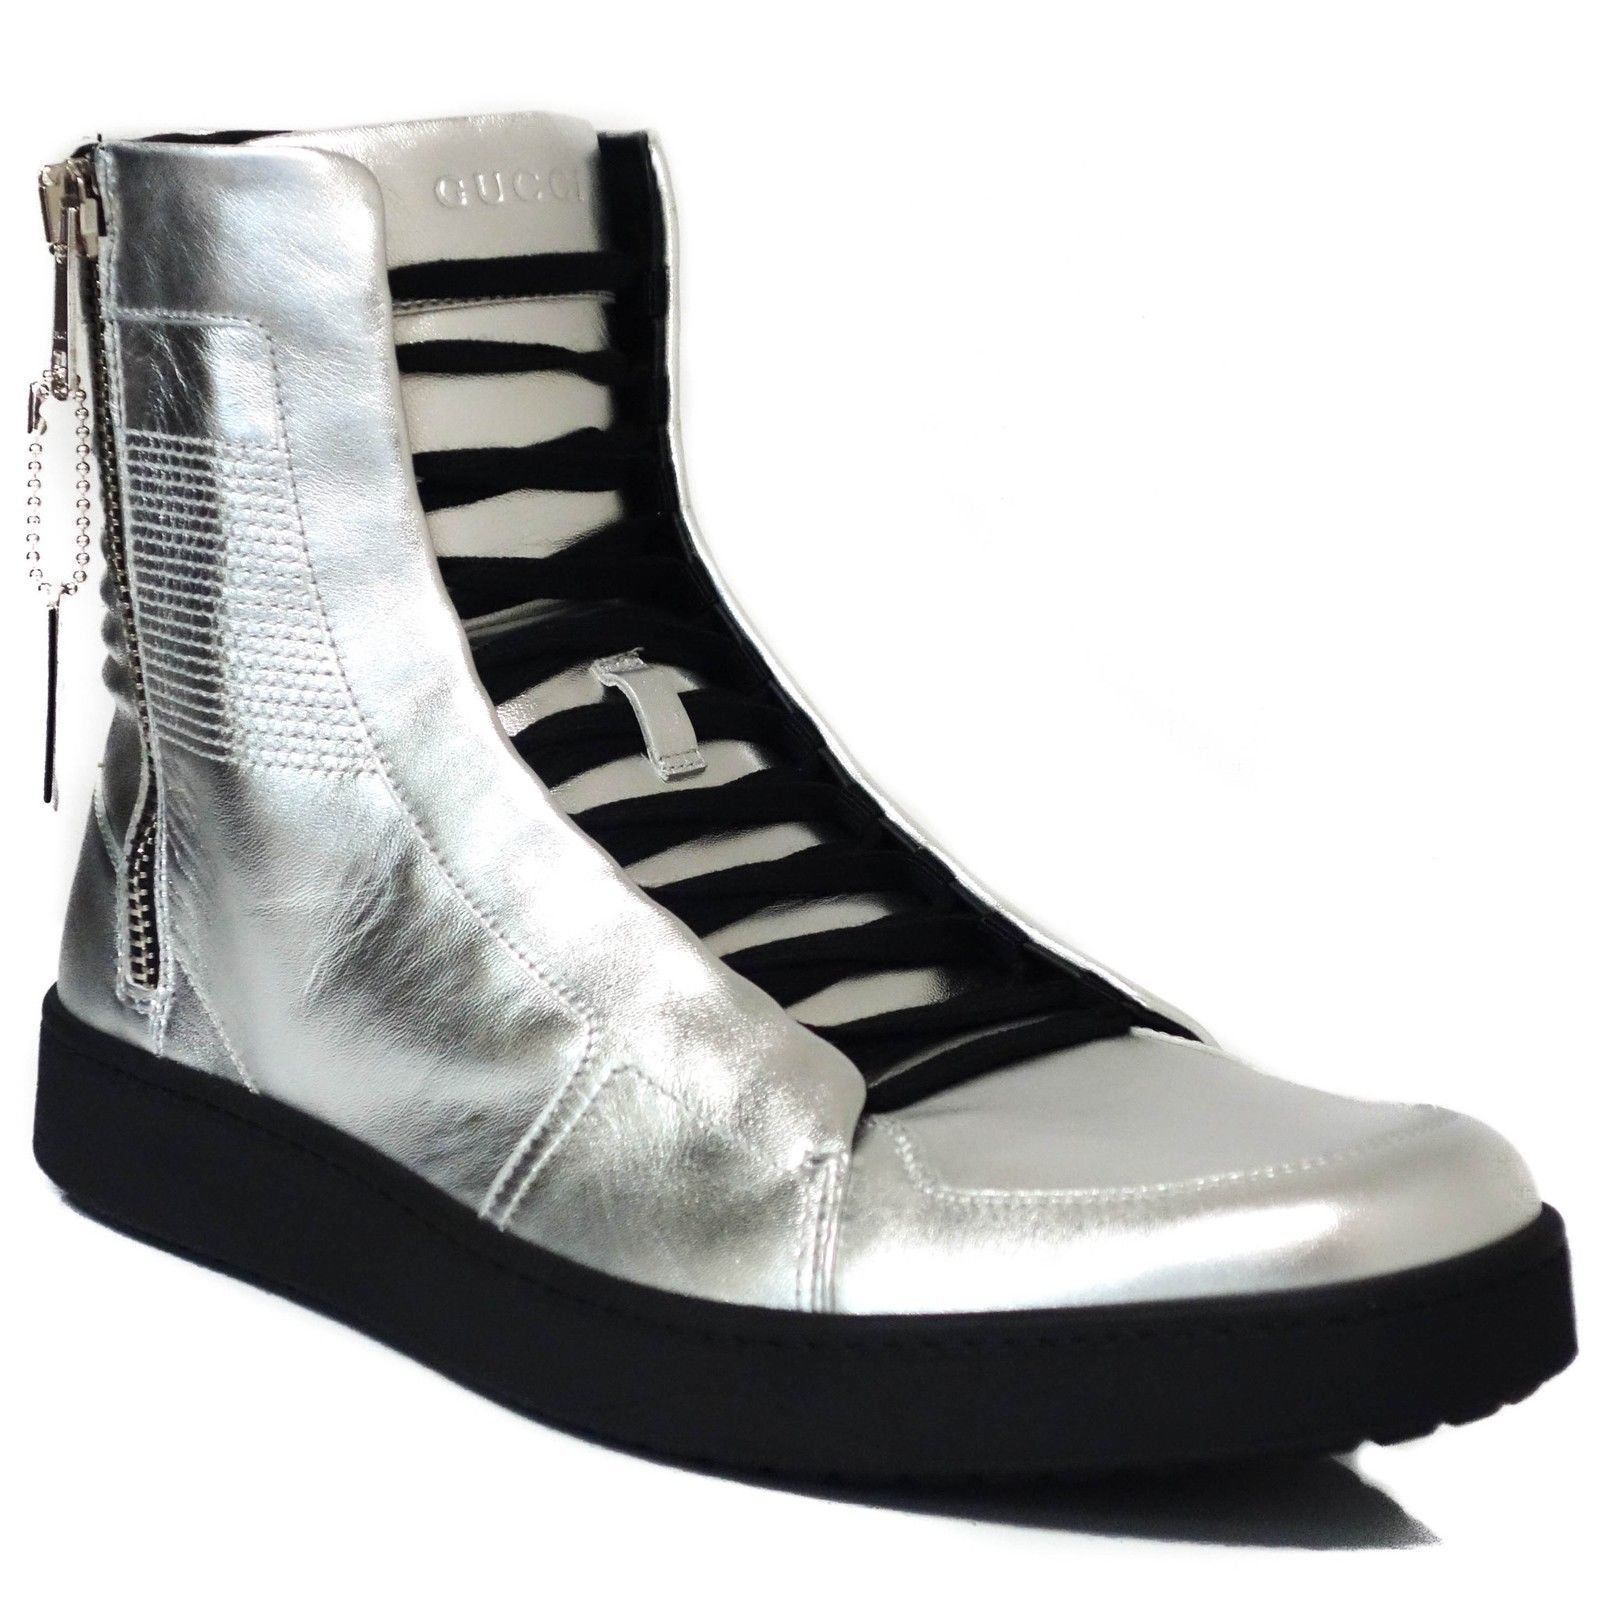 bf1c96954a5 GUCCI 376191 Men s Leather Silver High-Top and 49 similar items